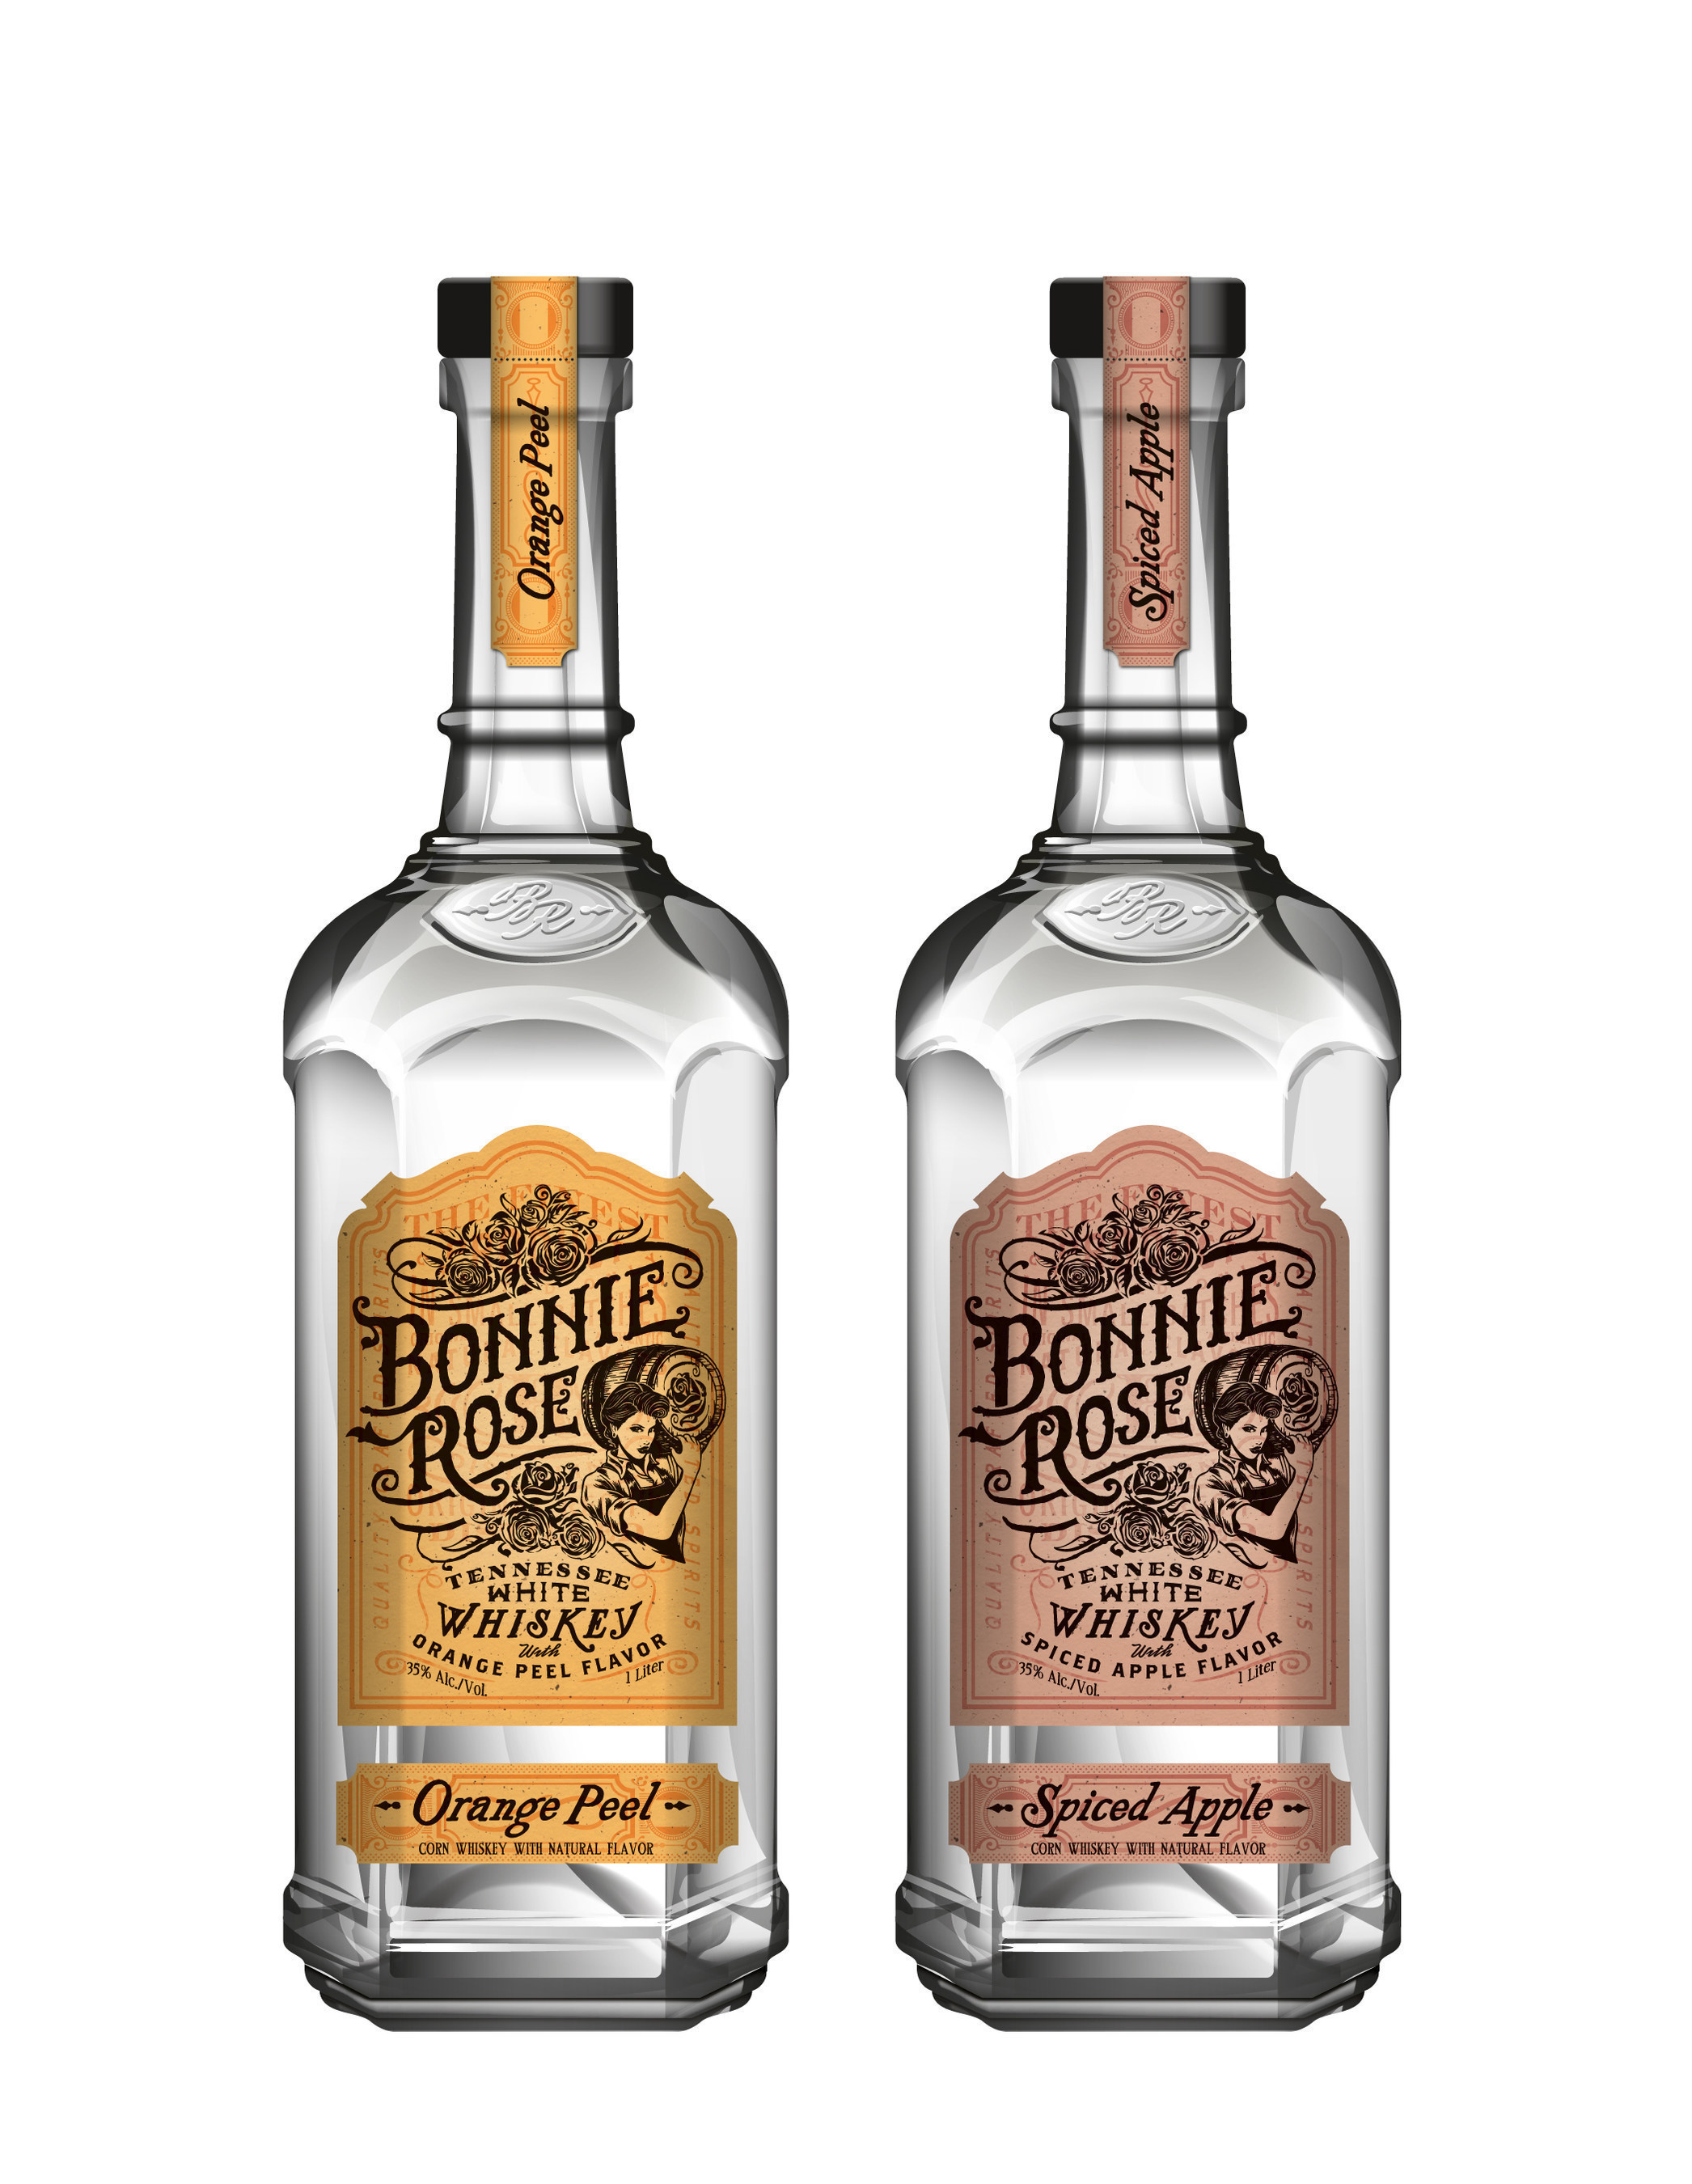 BONNIE ROSE, a new Tennessean white whiskey launches in Nashville July 13th.